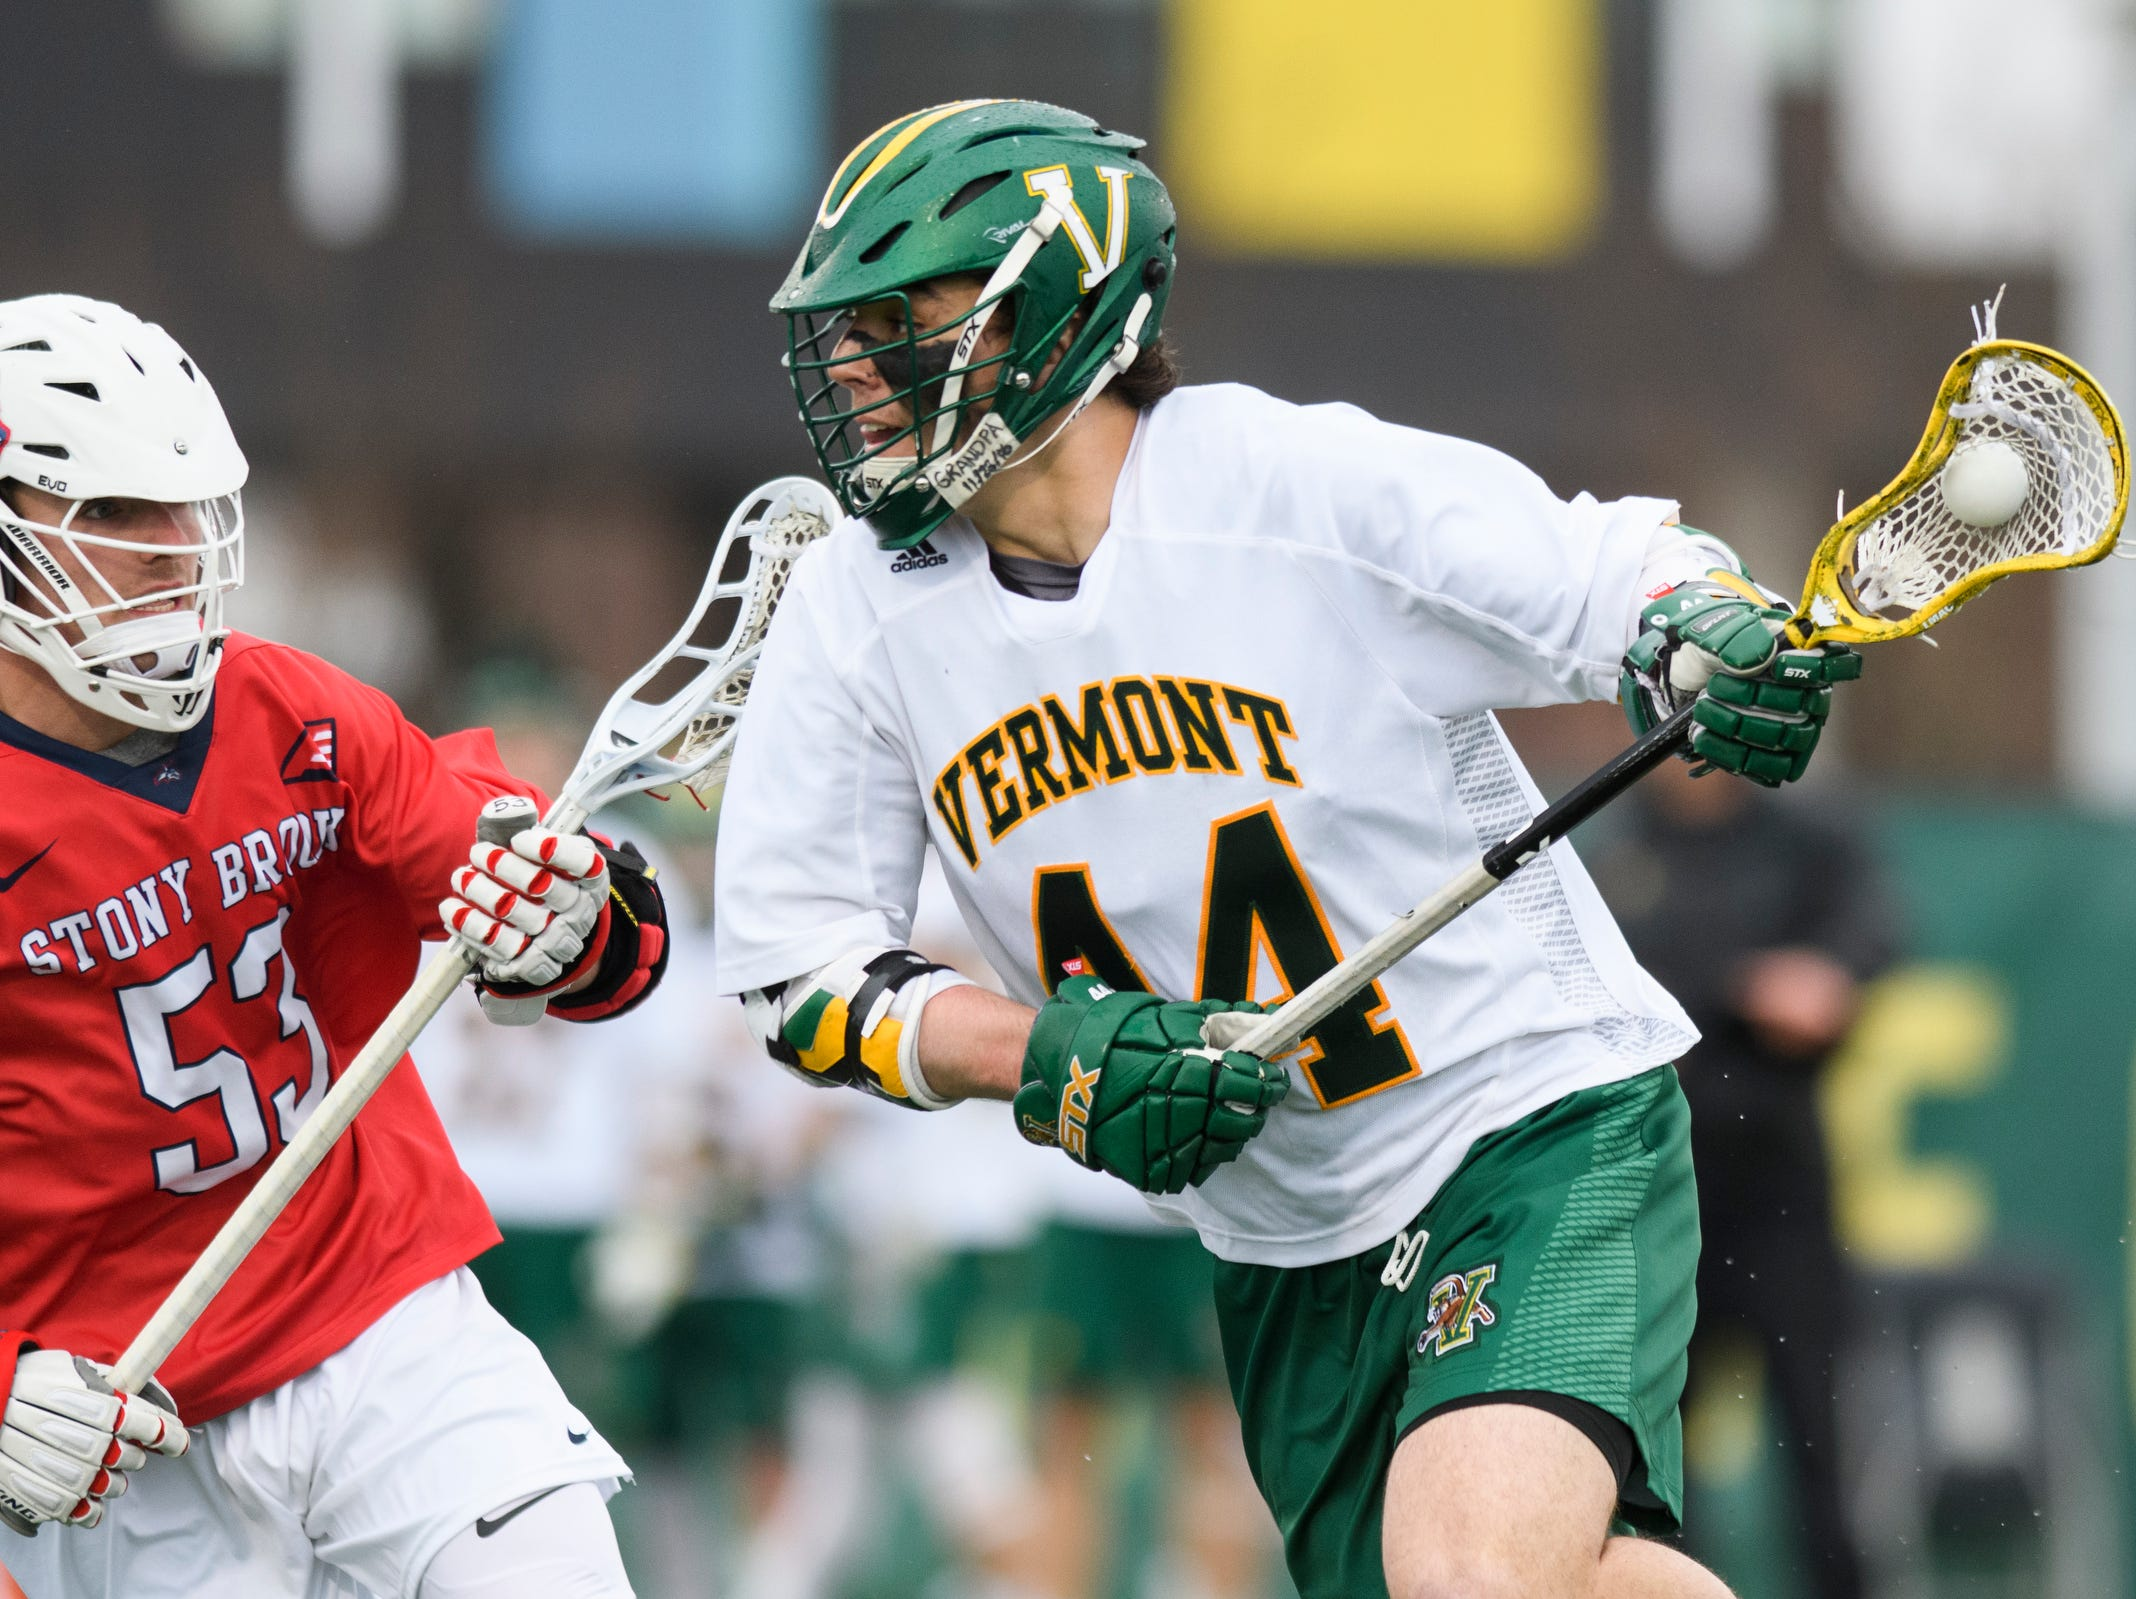 Vermont's Thomas McConvey (44) runs with the ball past Stony Brook's Caleb Pearson (53) during the men's lacrosse game between the Stony Brook Sea Wolves and the Vermont Catamounts at Virtue Field on Saturday afternoon April 20, 2019 in Burlington, Vermont.